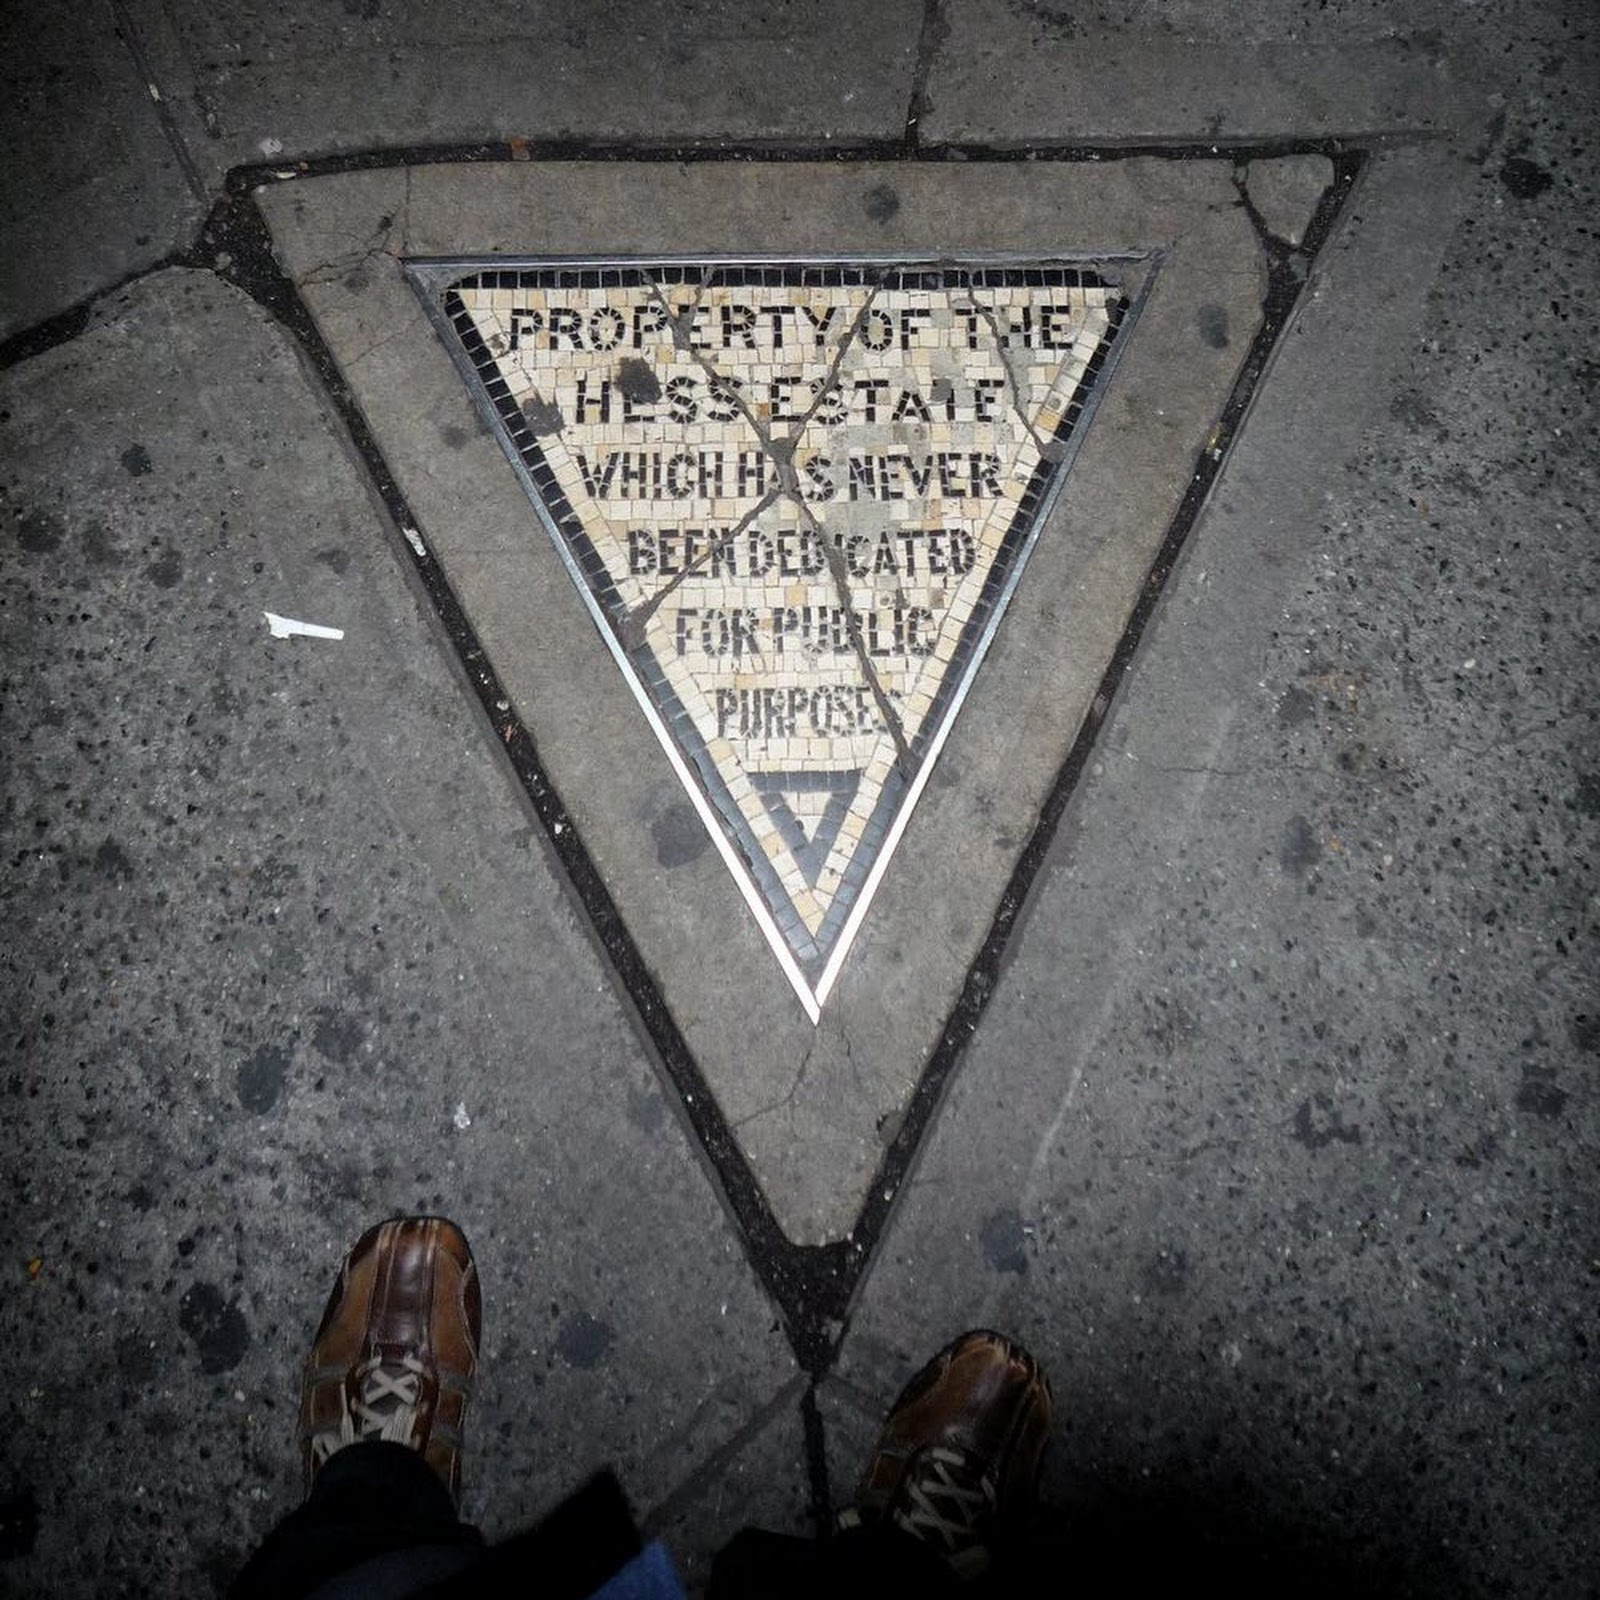 Hess Triangle: The Smallest Piece of Private Property in New York City